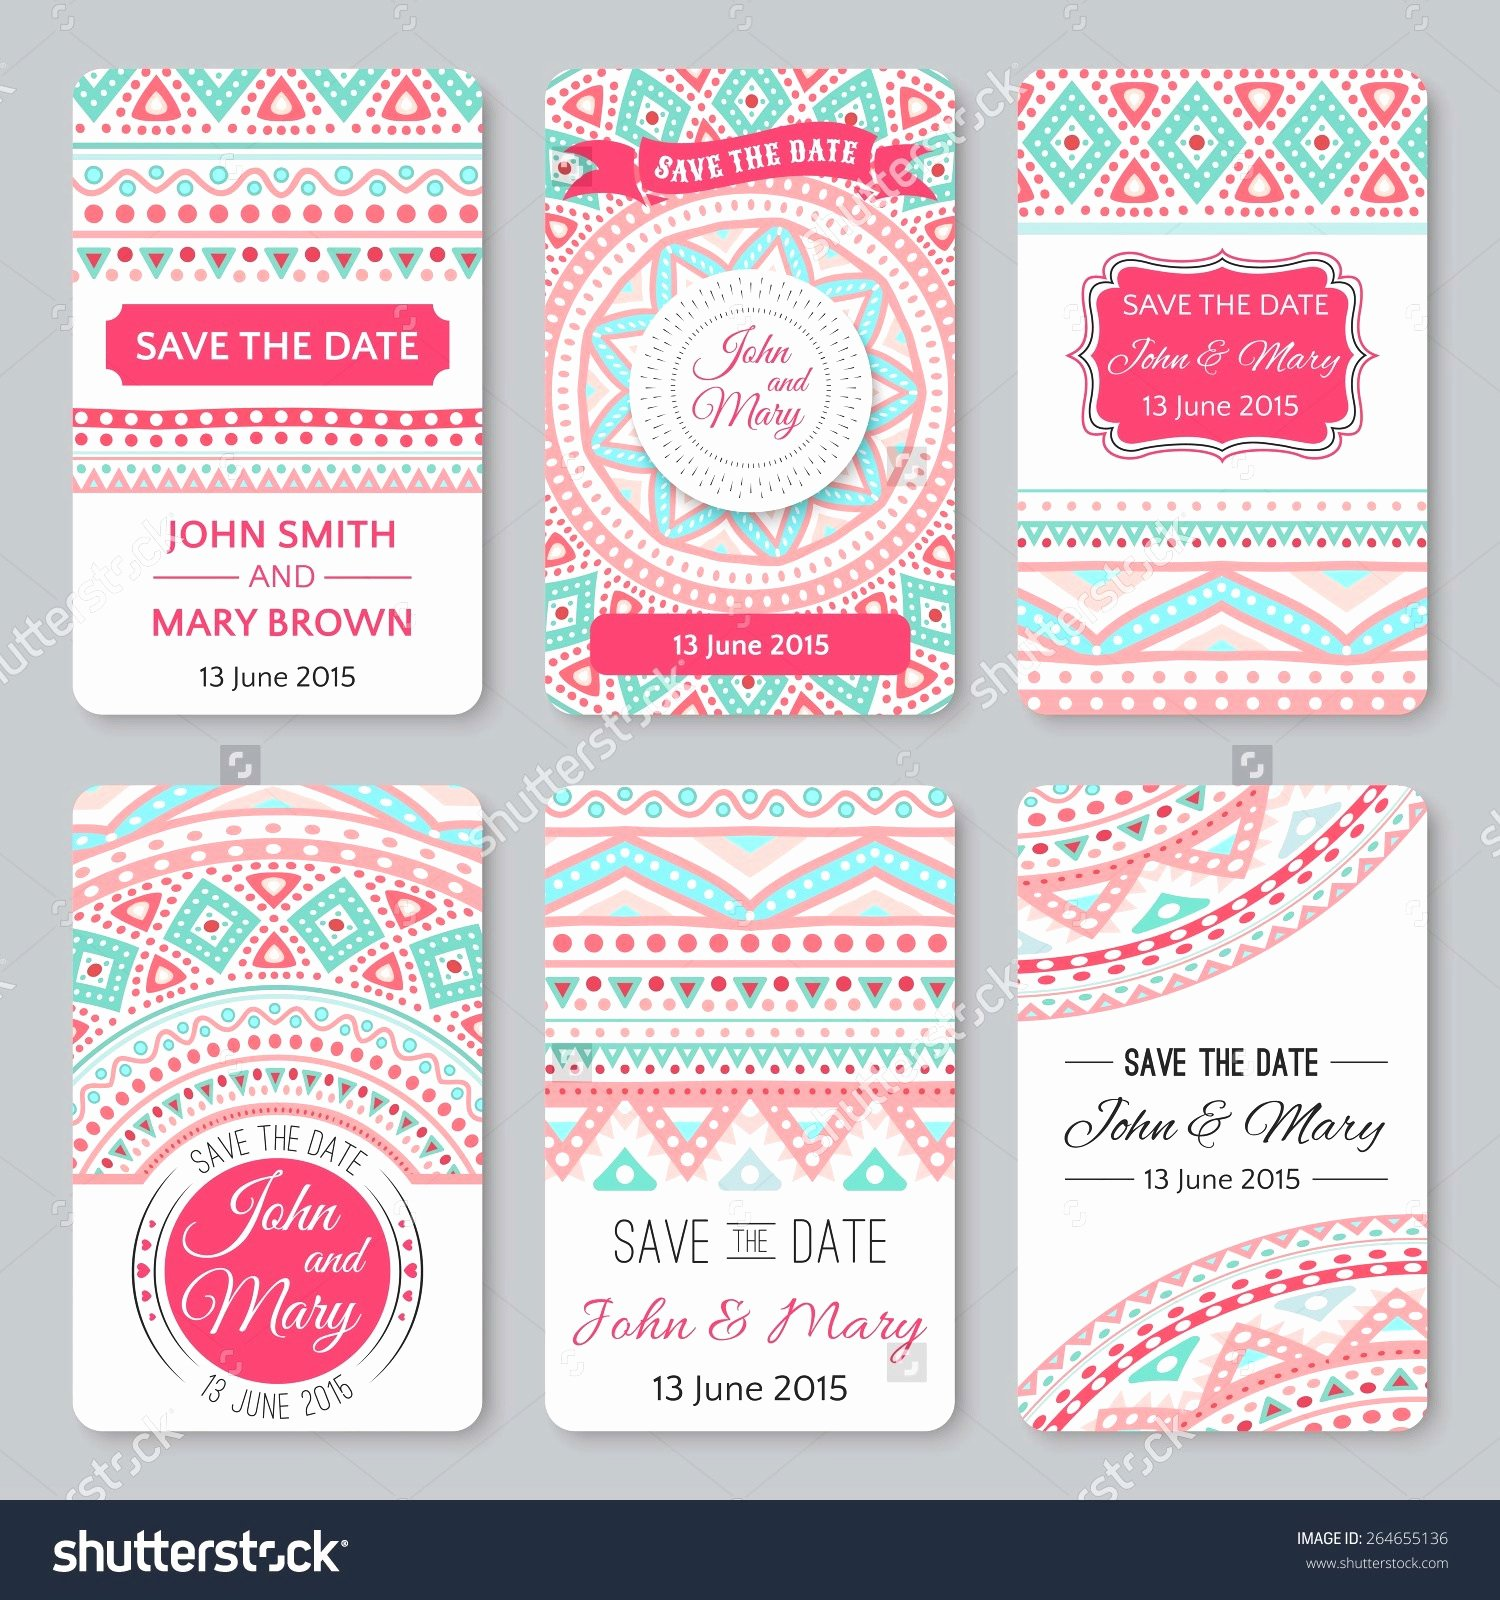 Baby Shower Programs Template Best Of Baby Shower Program Template Graphics and Templates How to